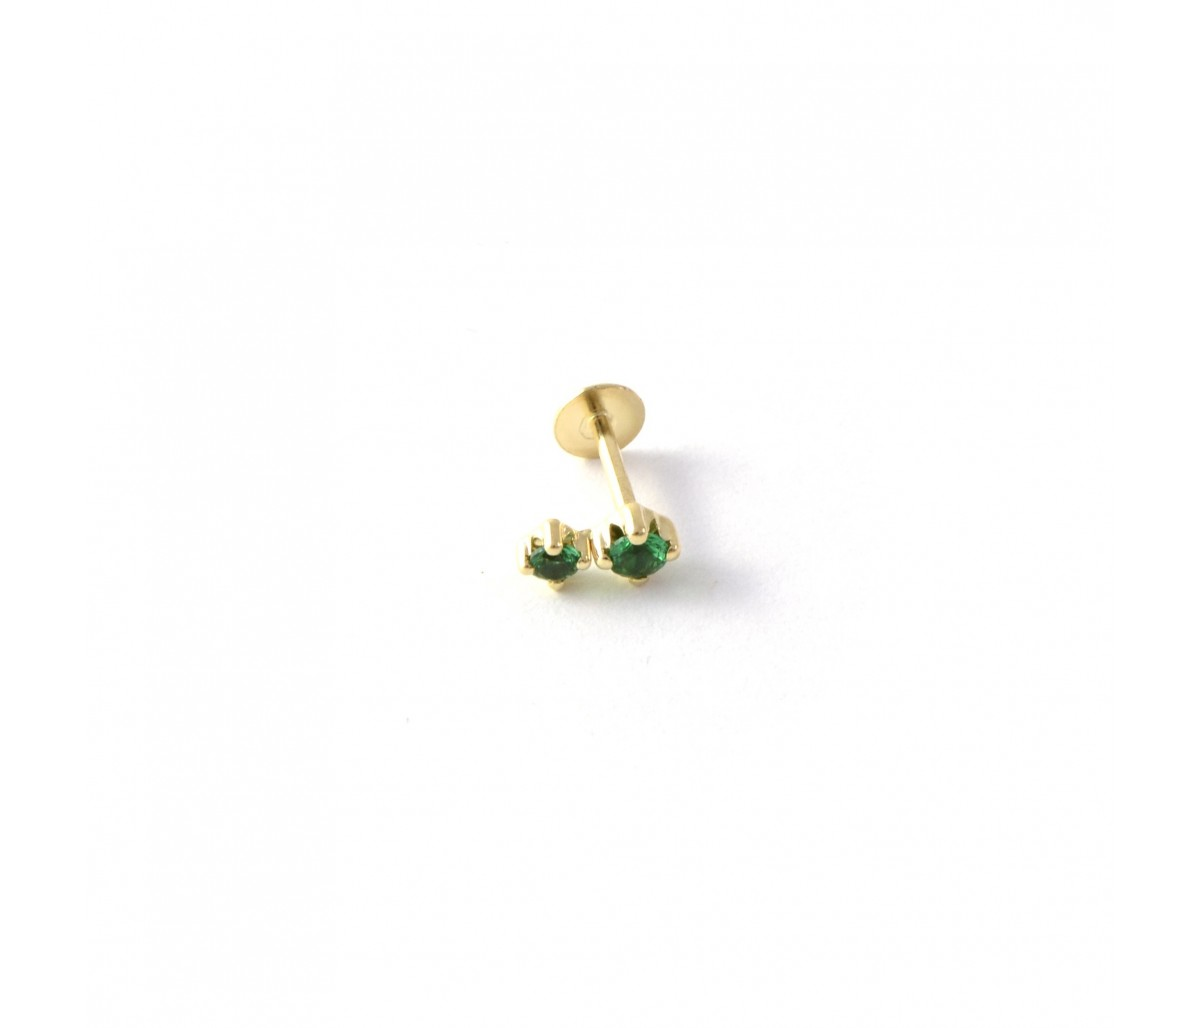 Piercing Green Tami or 18k